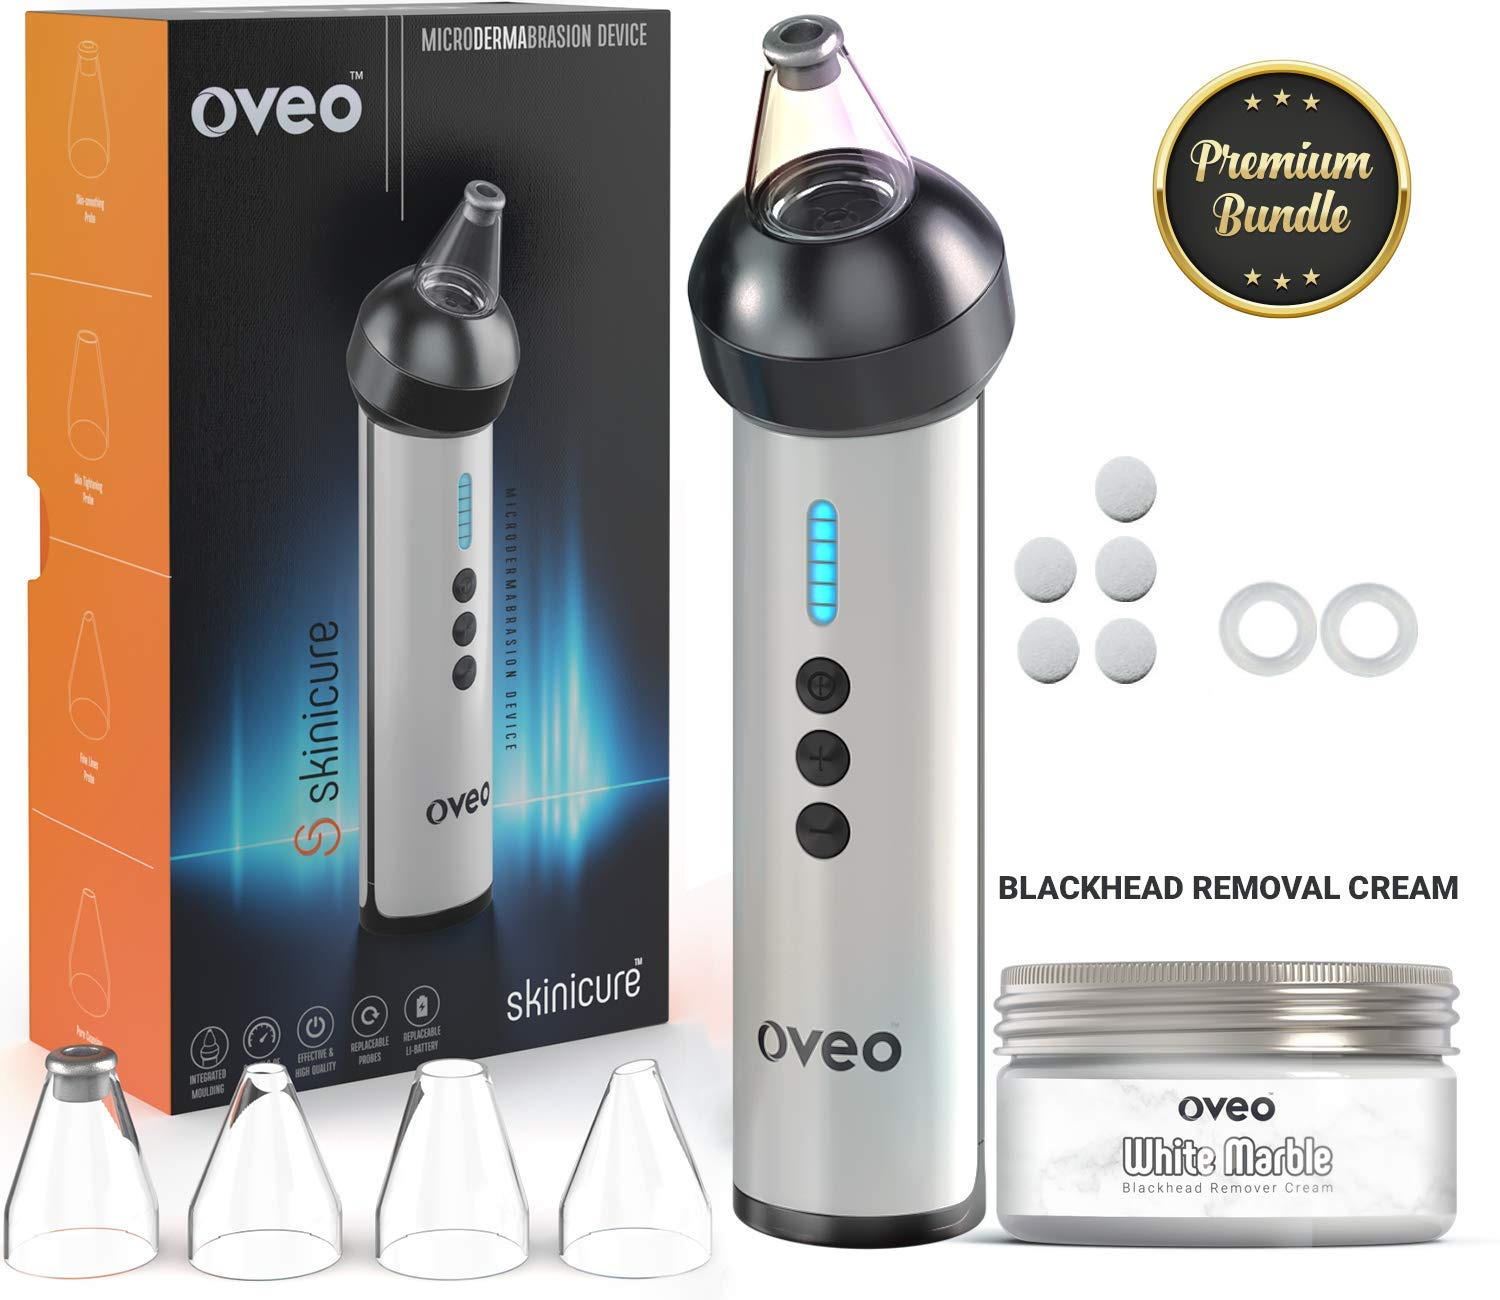 Advanced #1 Pore Vacuum Blackhead Eliminator, Acne Extractor, Pimple Remover, Facial Pore Cleanser - Comedo Suction Diamond Microdermabrasion Device by Oveo - Anti Aging Rechargeable and Portable